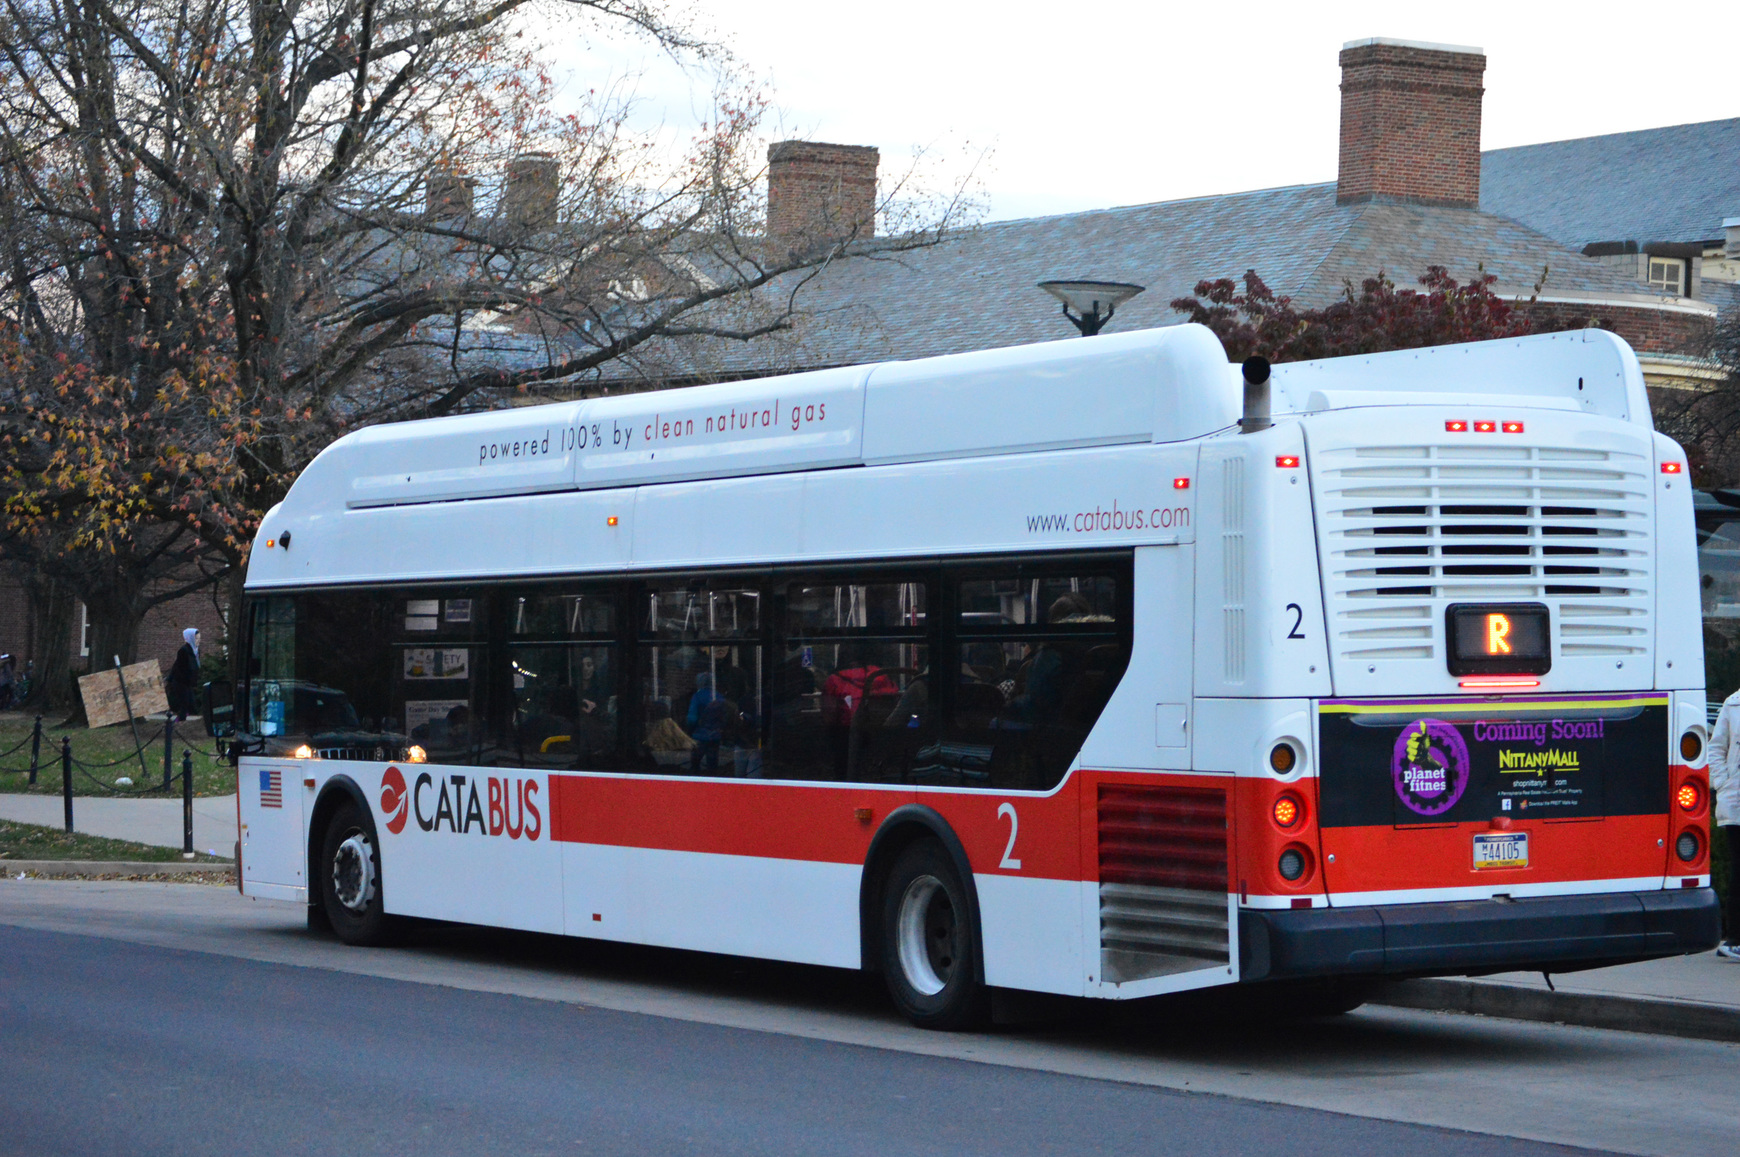 The Ultimate CATA Bus Wish List